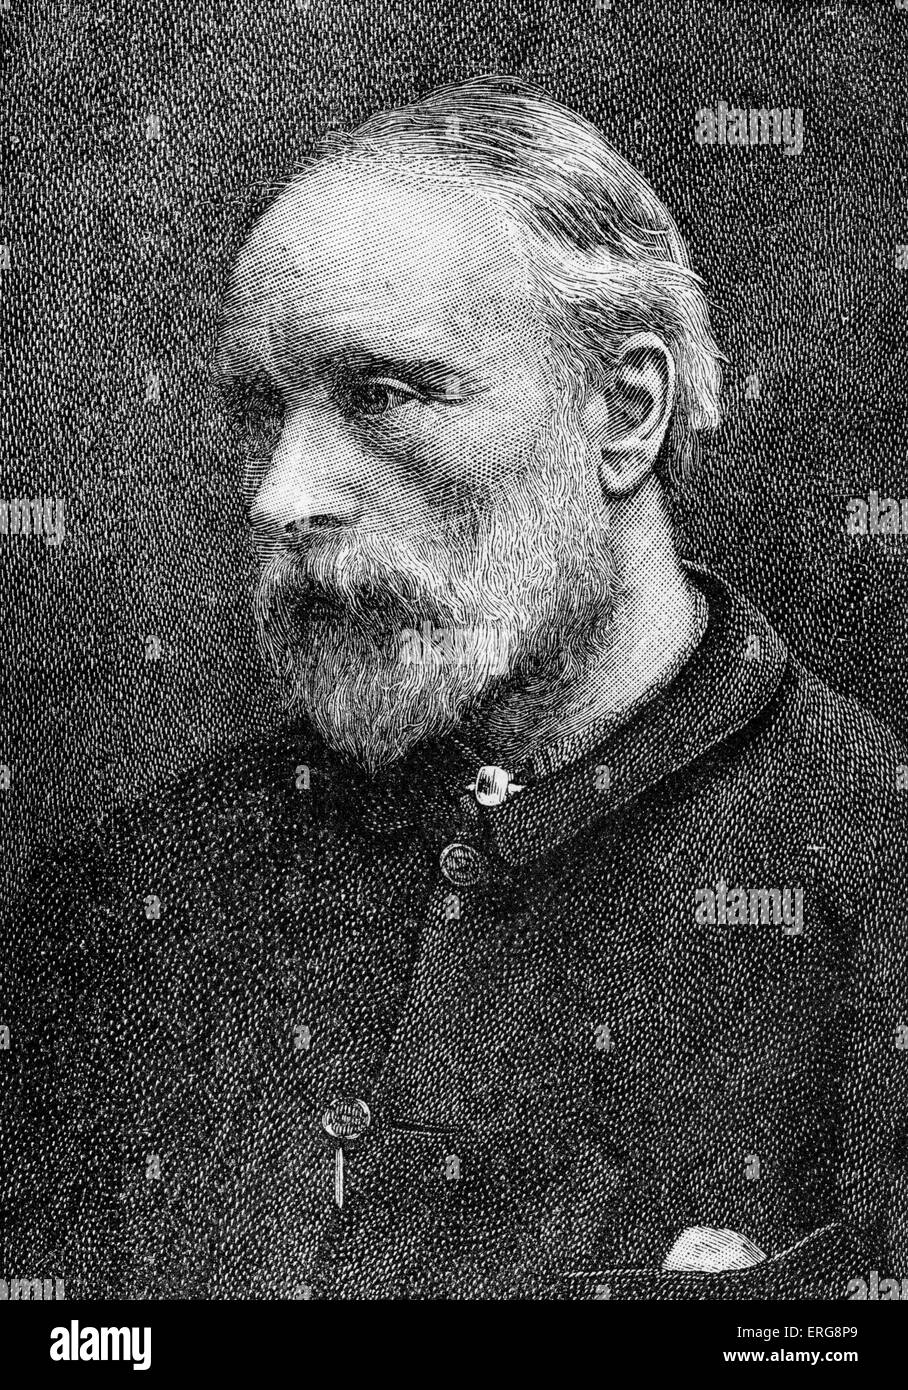 Sir Edward Burne-Jones, portrait.  British artist and designer associated with the Pre-Raphaelite movement, b. 28 - Stock Image